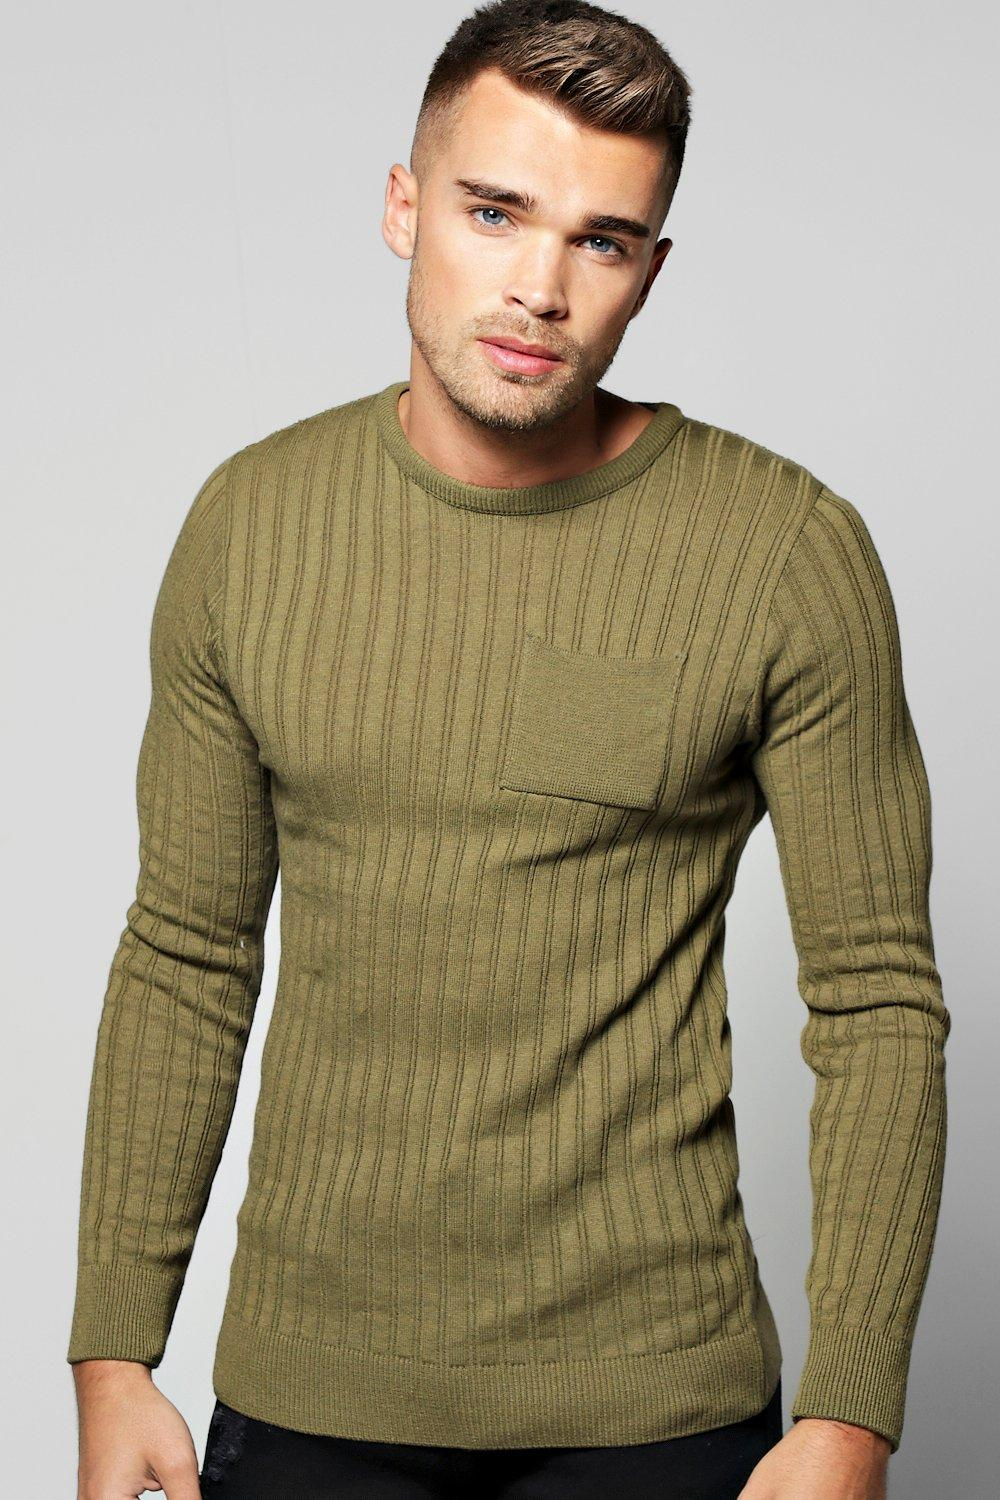 boohooMAN khaki Knitted Crew Neck Jumper With Patch Pocket